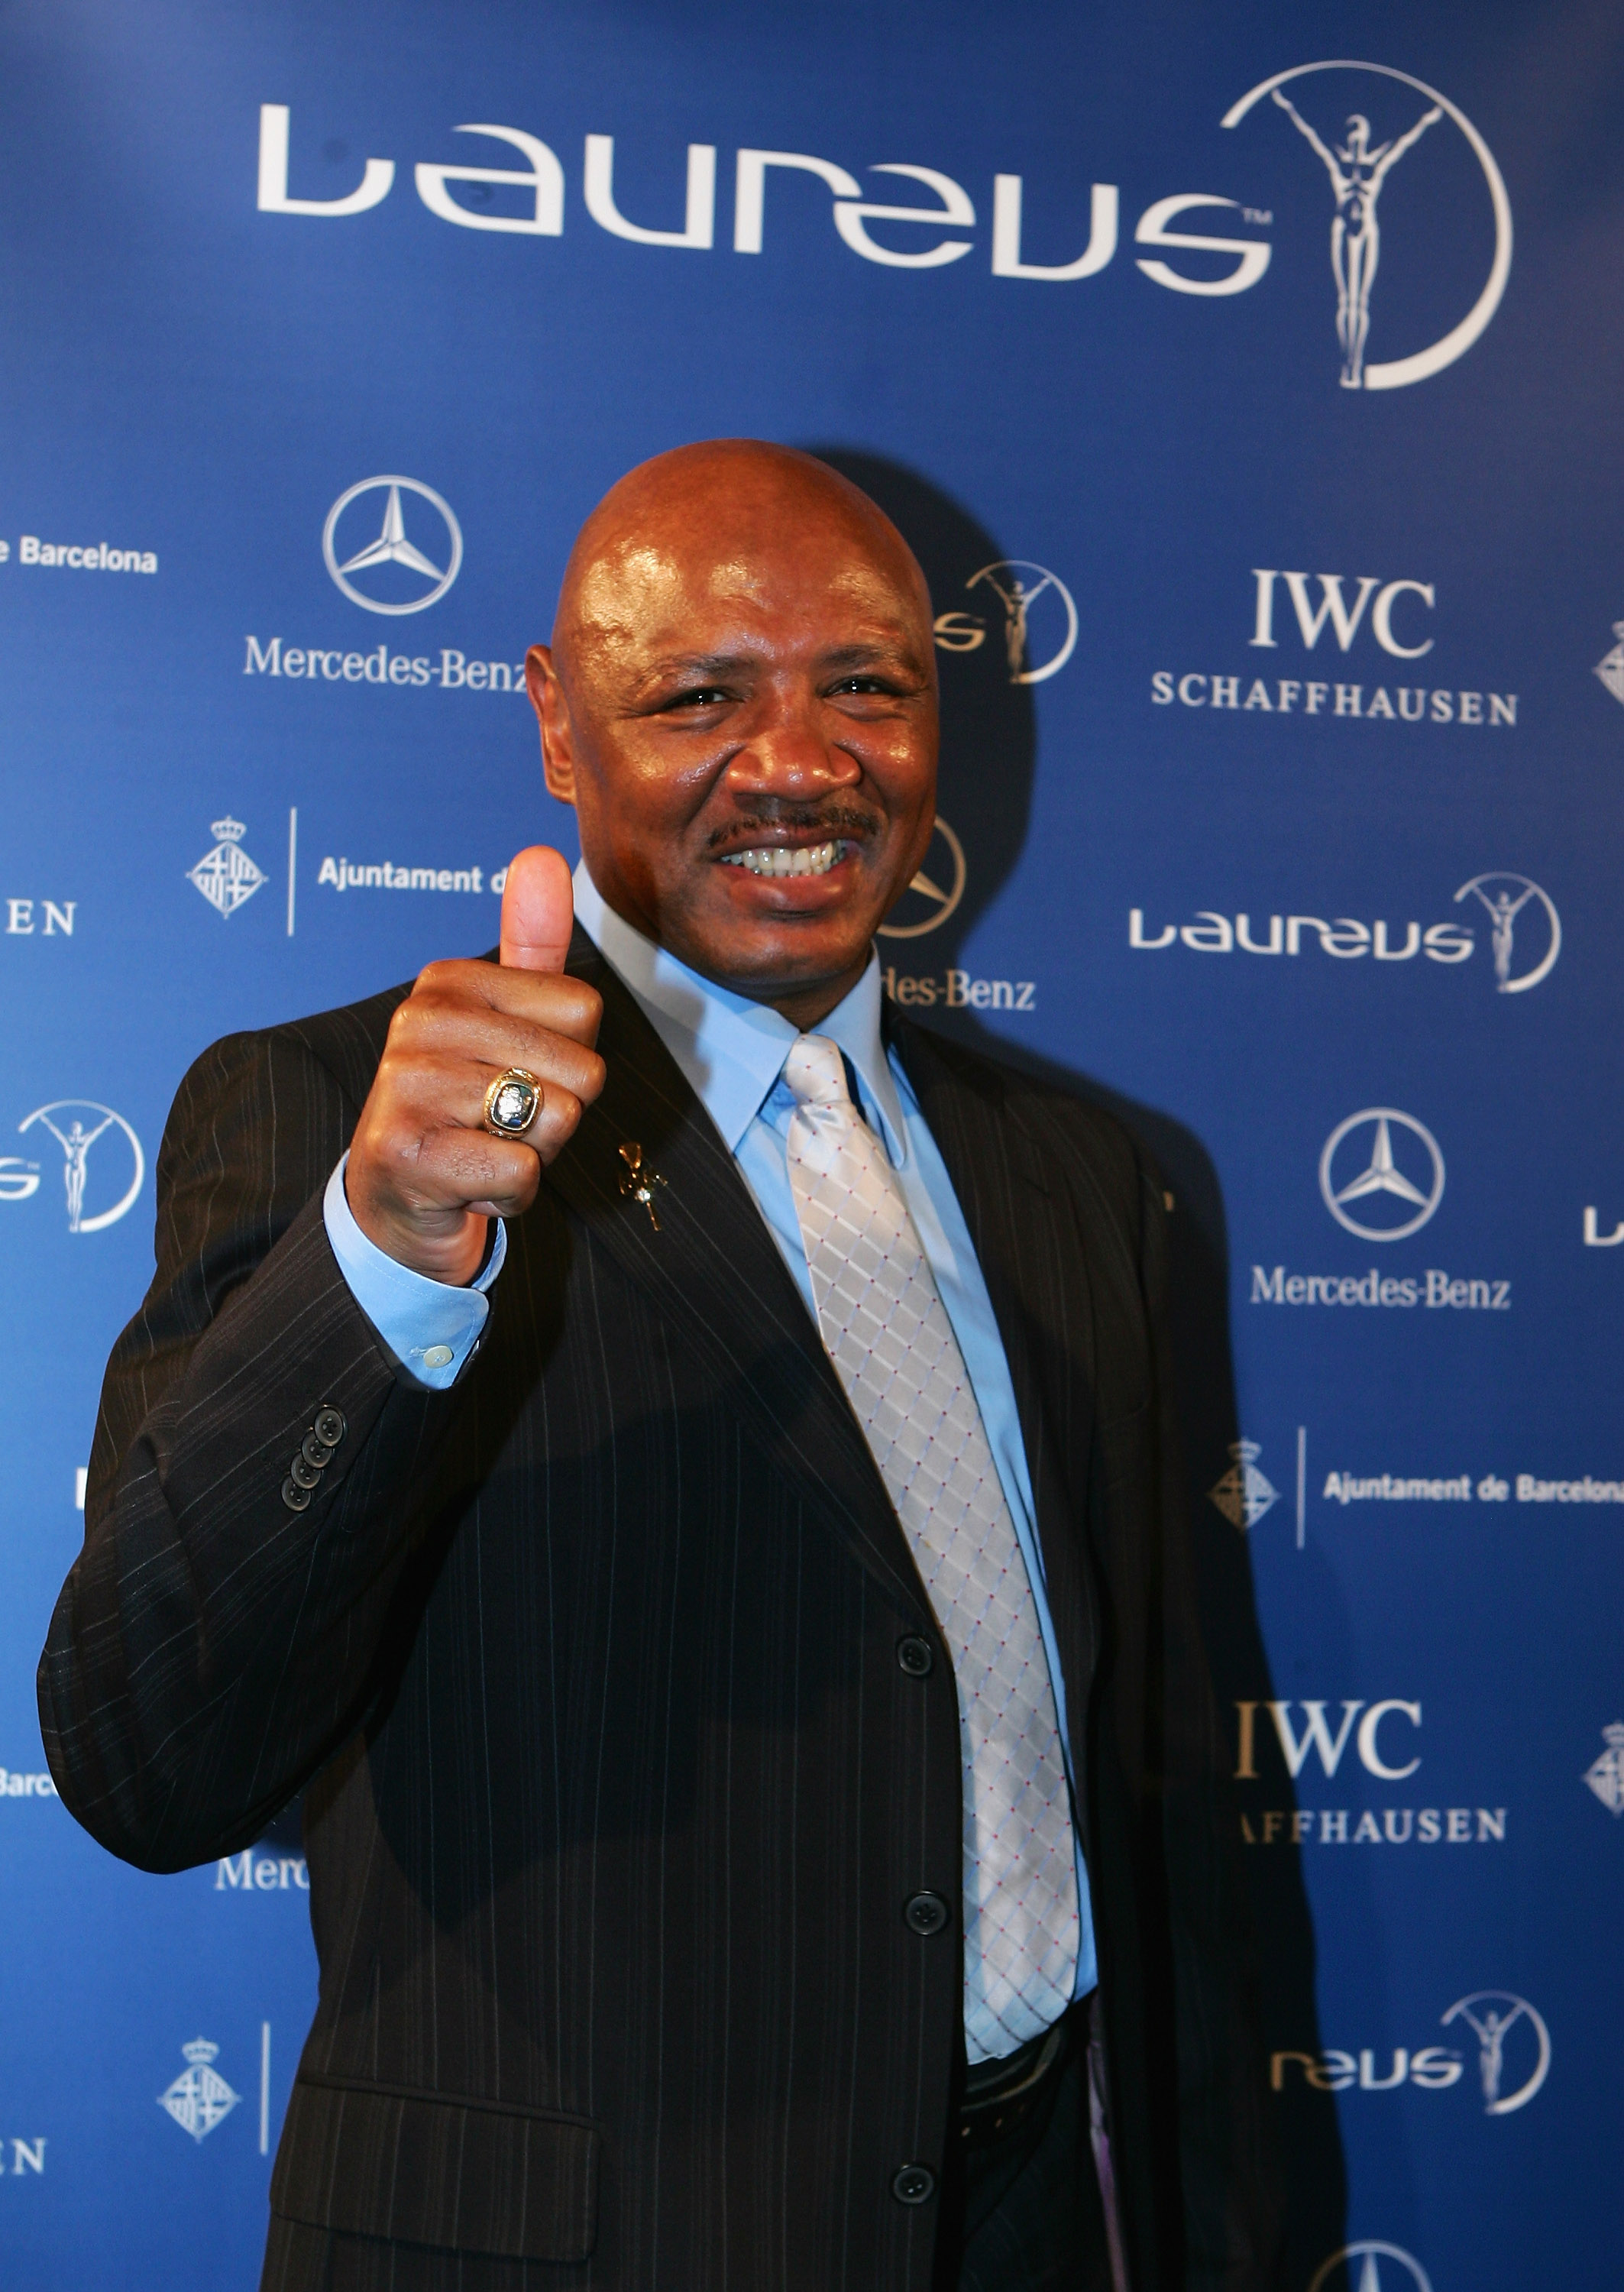 BARCELONA, SPAIN - APRIL 01:  Marvin Hagler attends the Laureus Welcome Party at Shoko prior to the Laureus Sports Awards on April 1, 2007 in Barcelona, Spain.   (Photo by Jamie McDonald/Getty Images for Laureus)